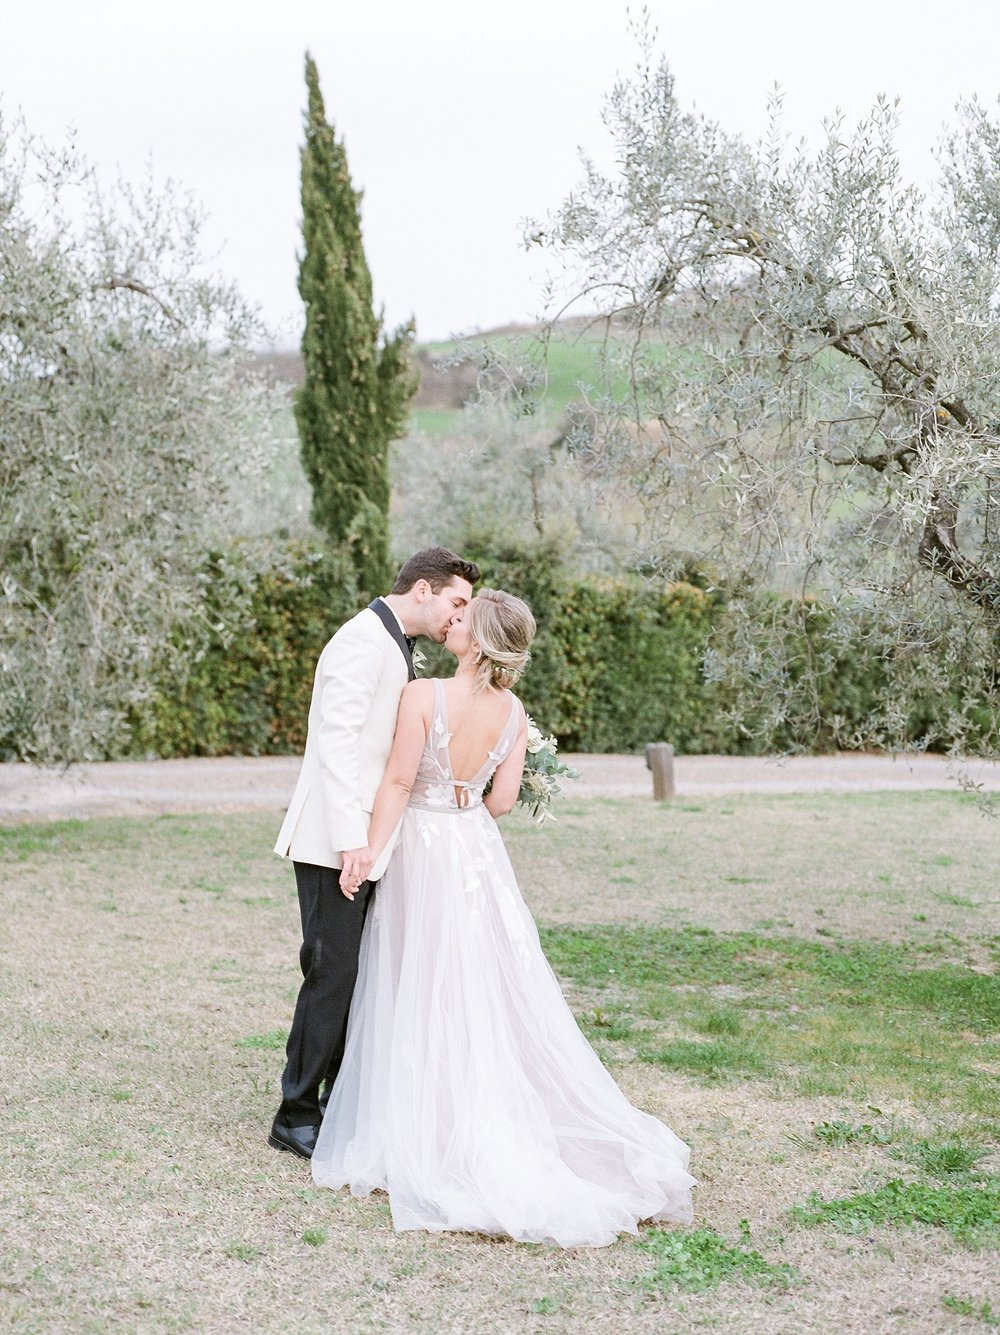 All White Destination Wedding in the Hills of Tuscany Italy at Estate Borgo Petrognano by Kelsi Kliethermes Photography_0057.jpg